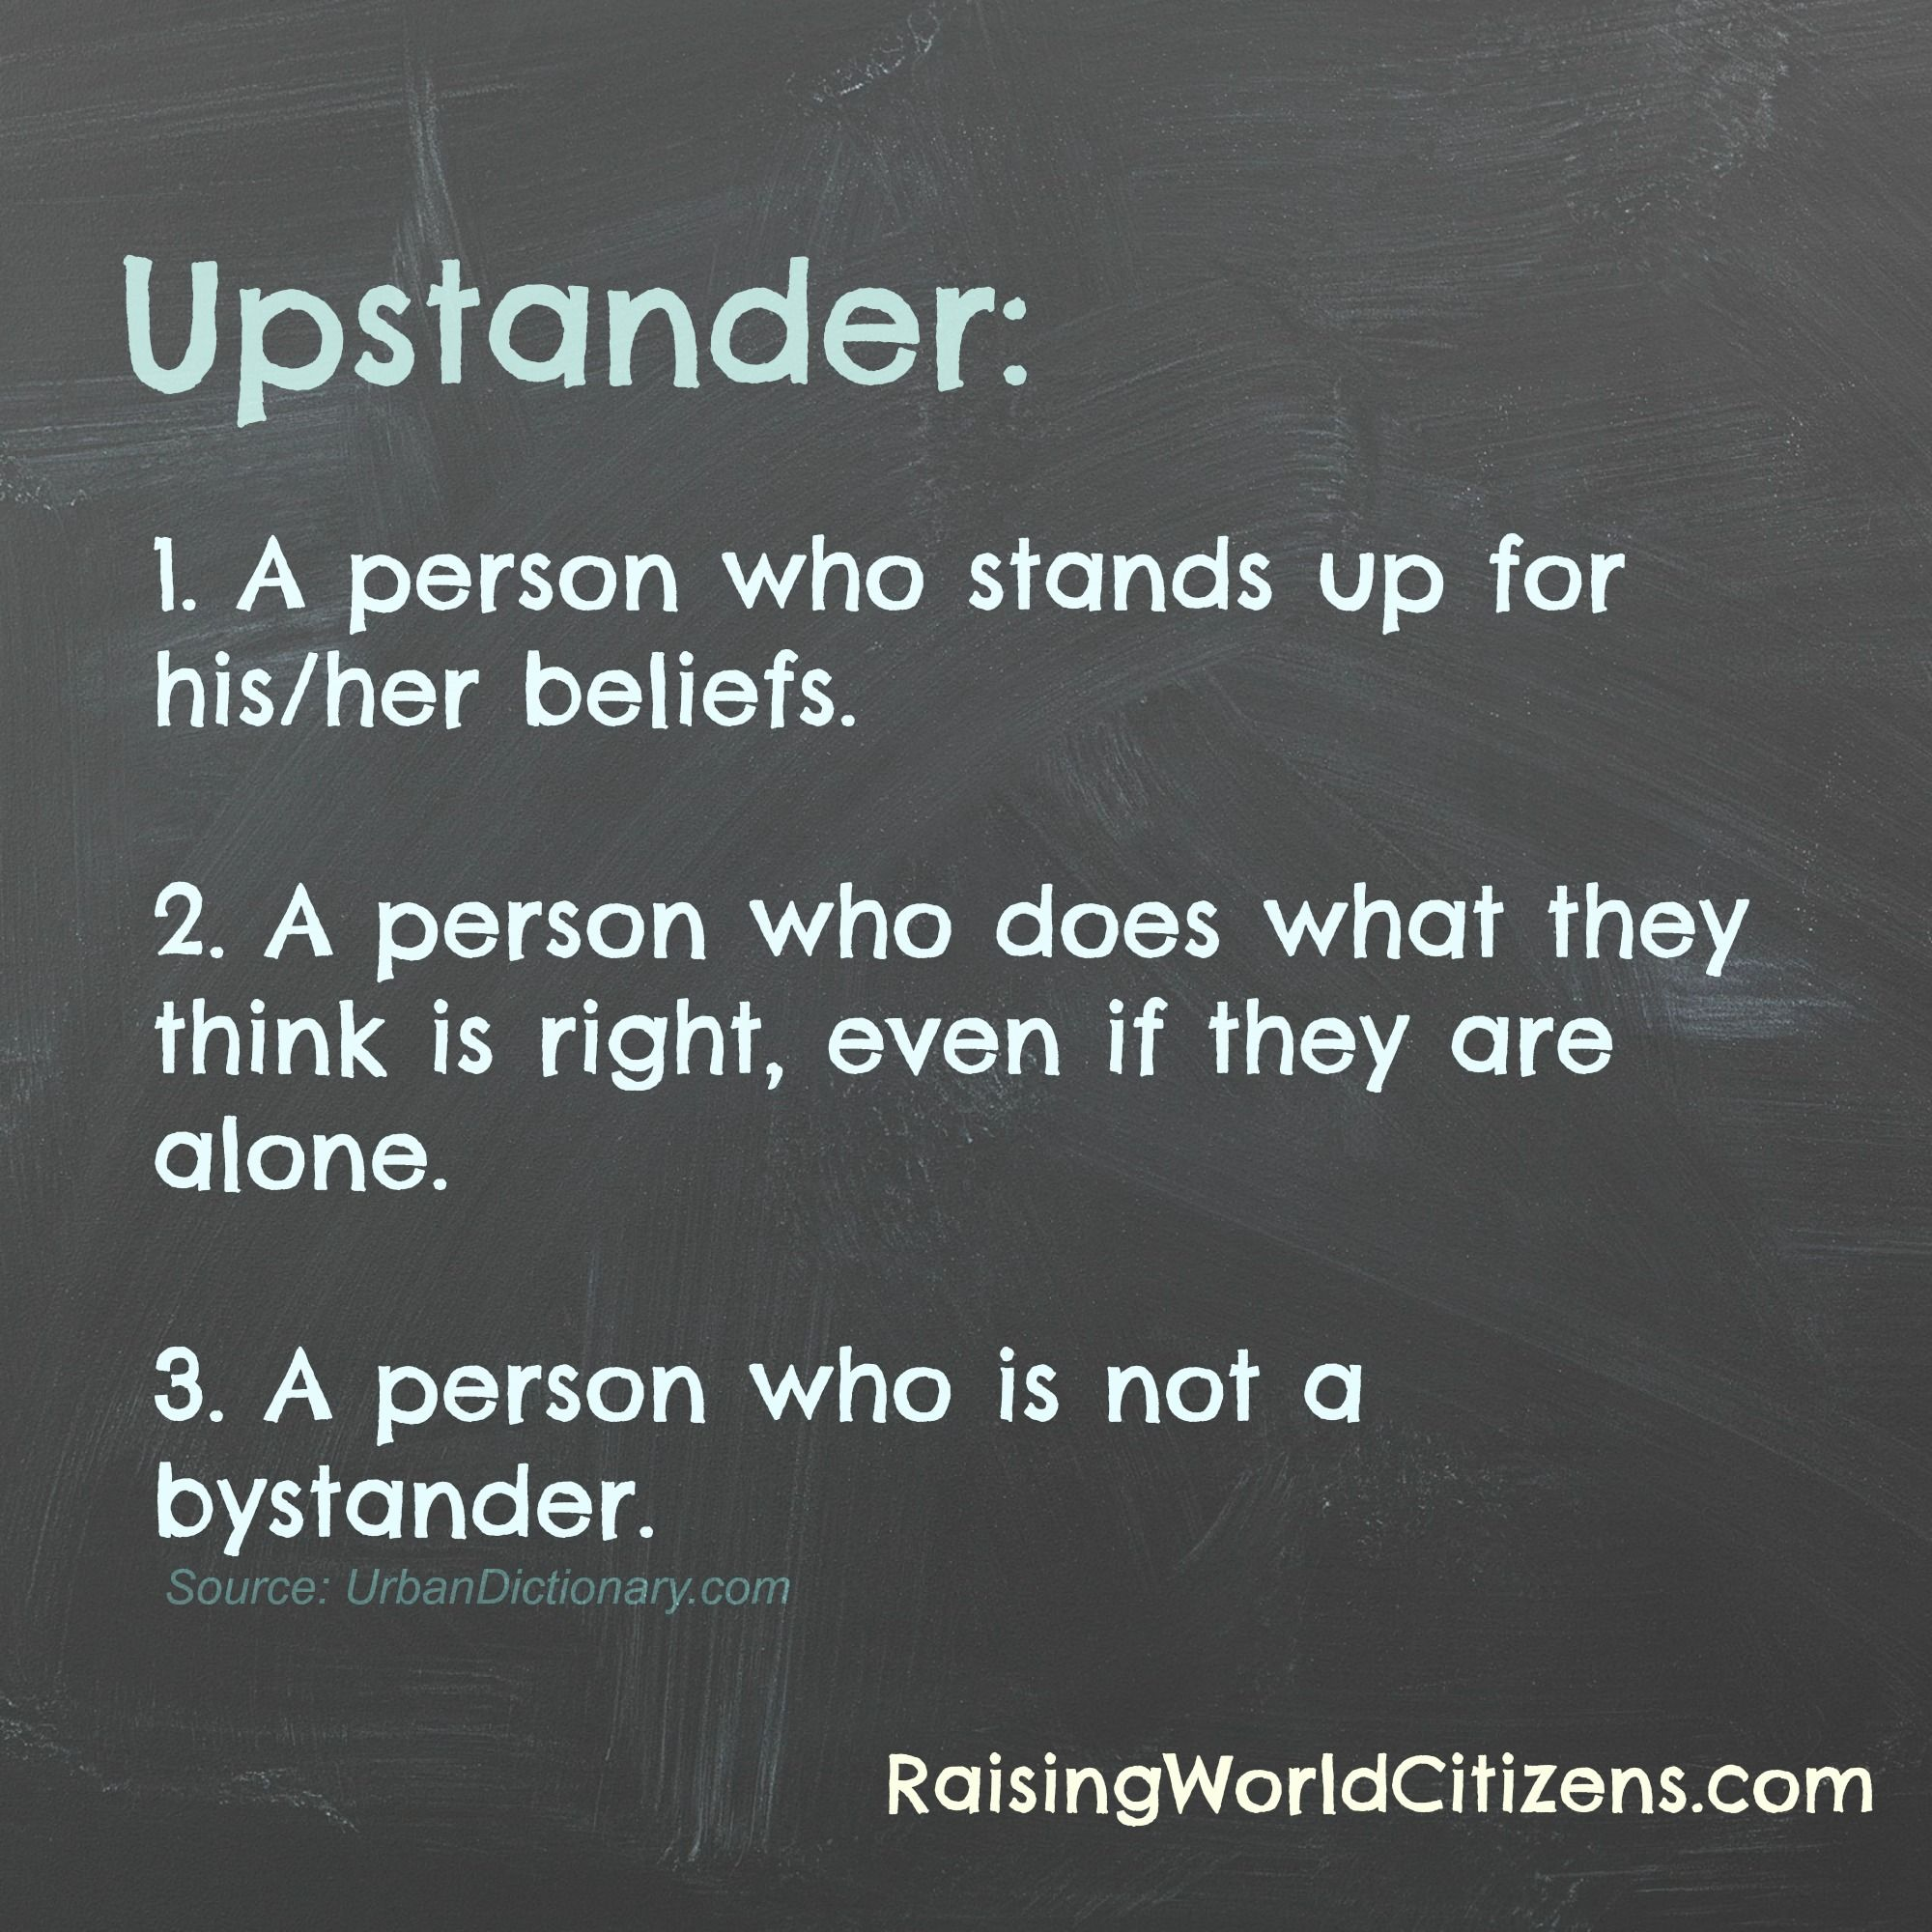 Who is an upstander